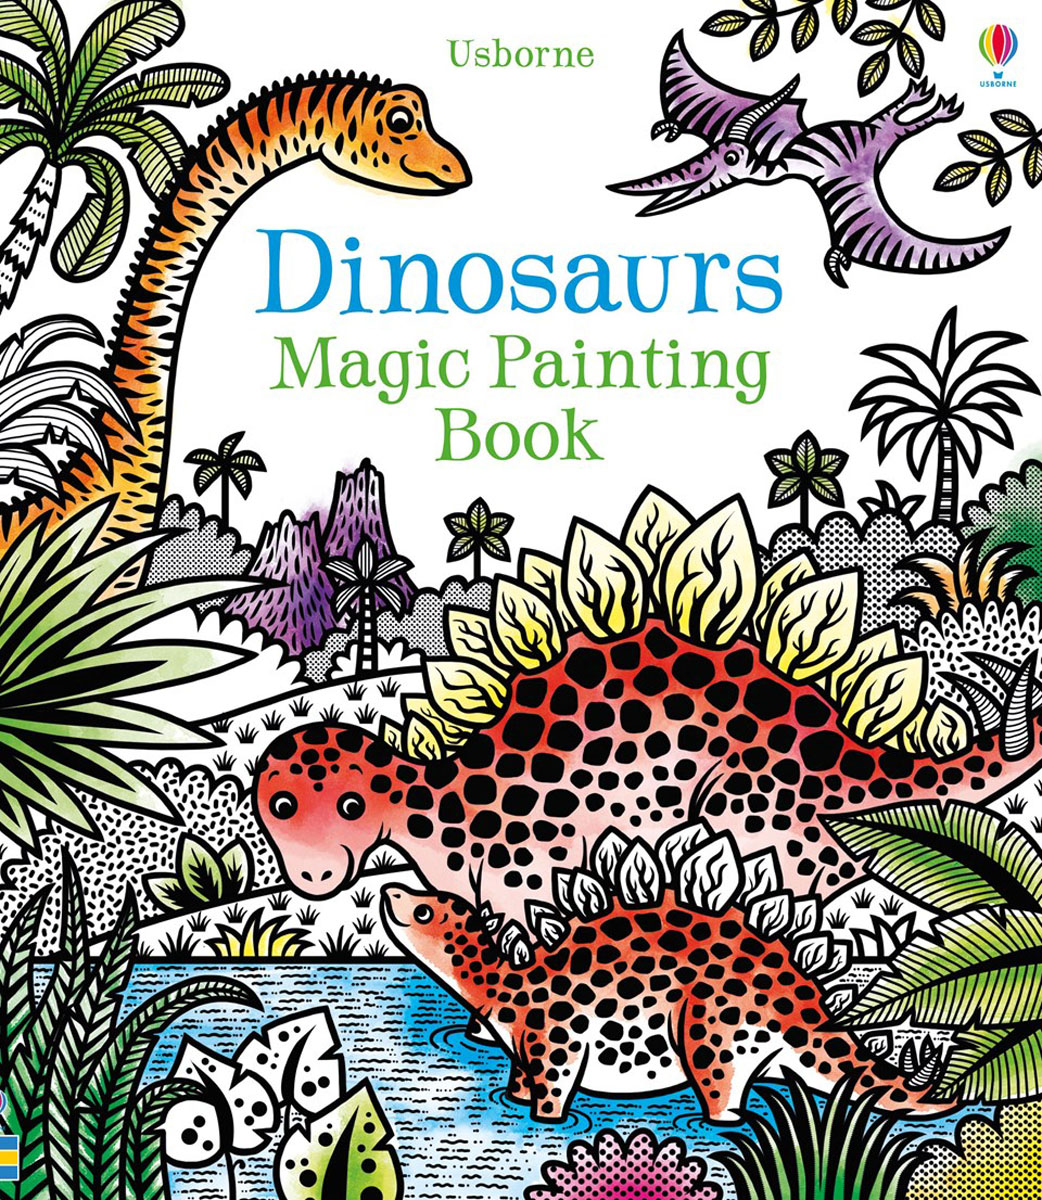 Dinosaurs magic painting book quest for the african dinosaurs